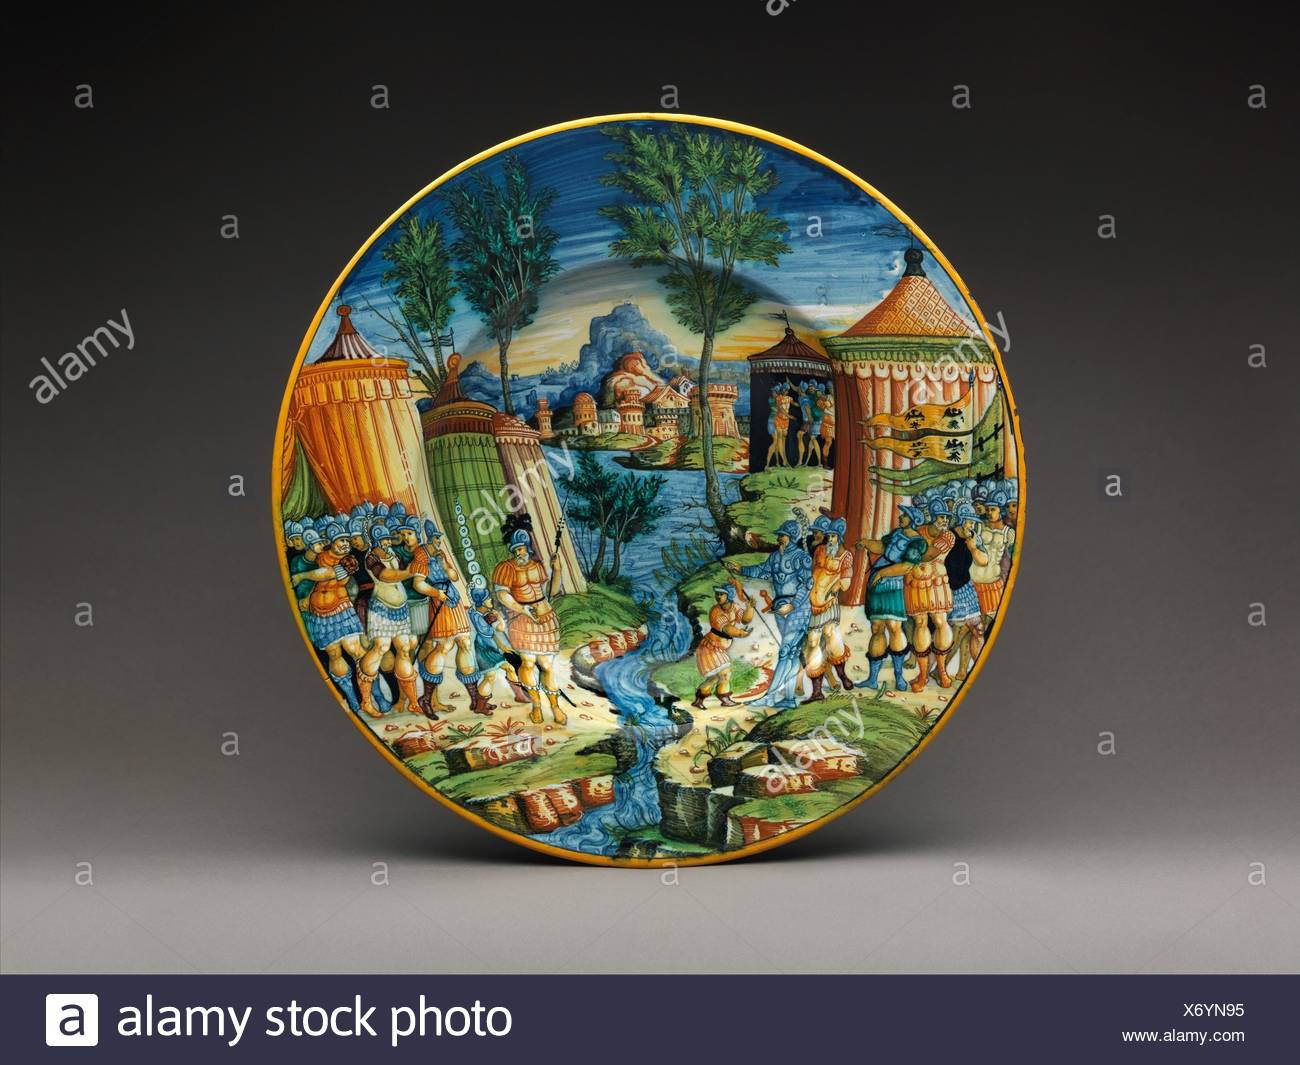 Dish or plate with Hannibal Encountering Roman Troops in Italy. Artist: Probably workshop of Guido Durantino (Italian, Urbino, active 1516-ca. 1576); - Stock Image